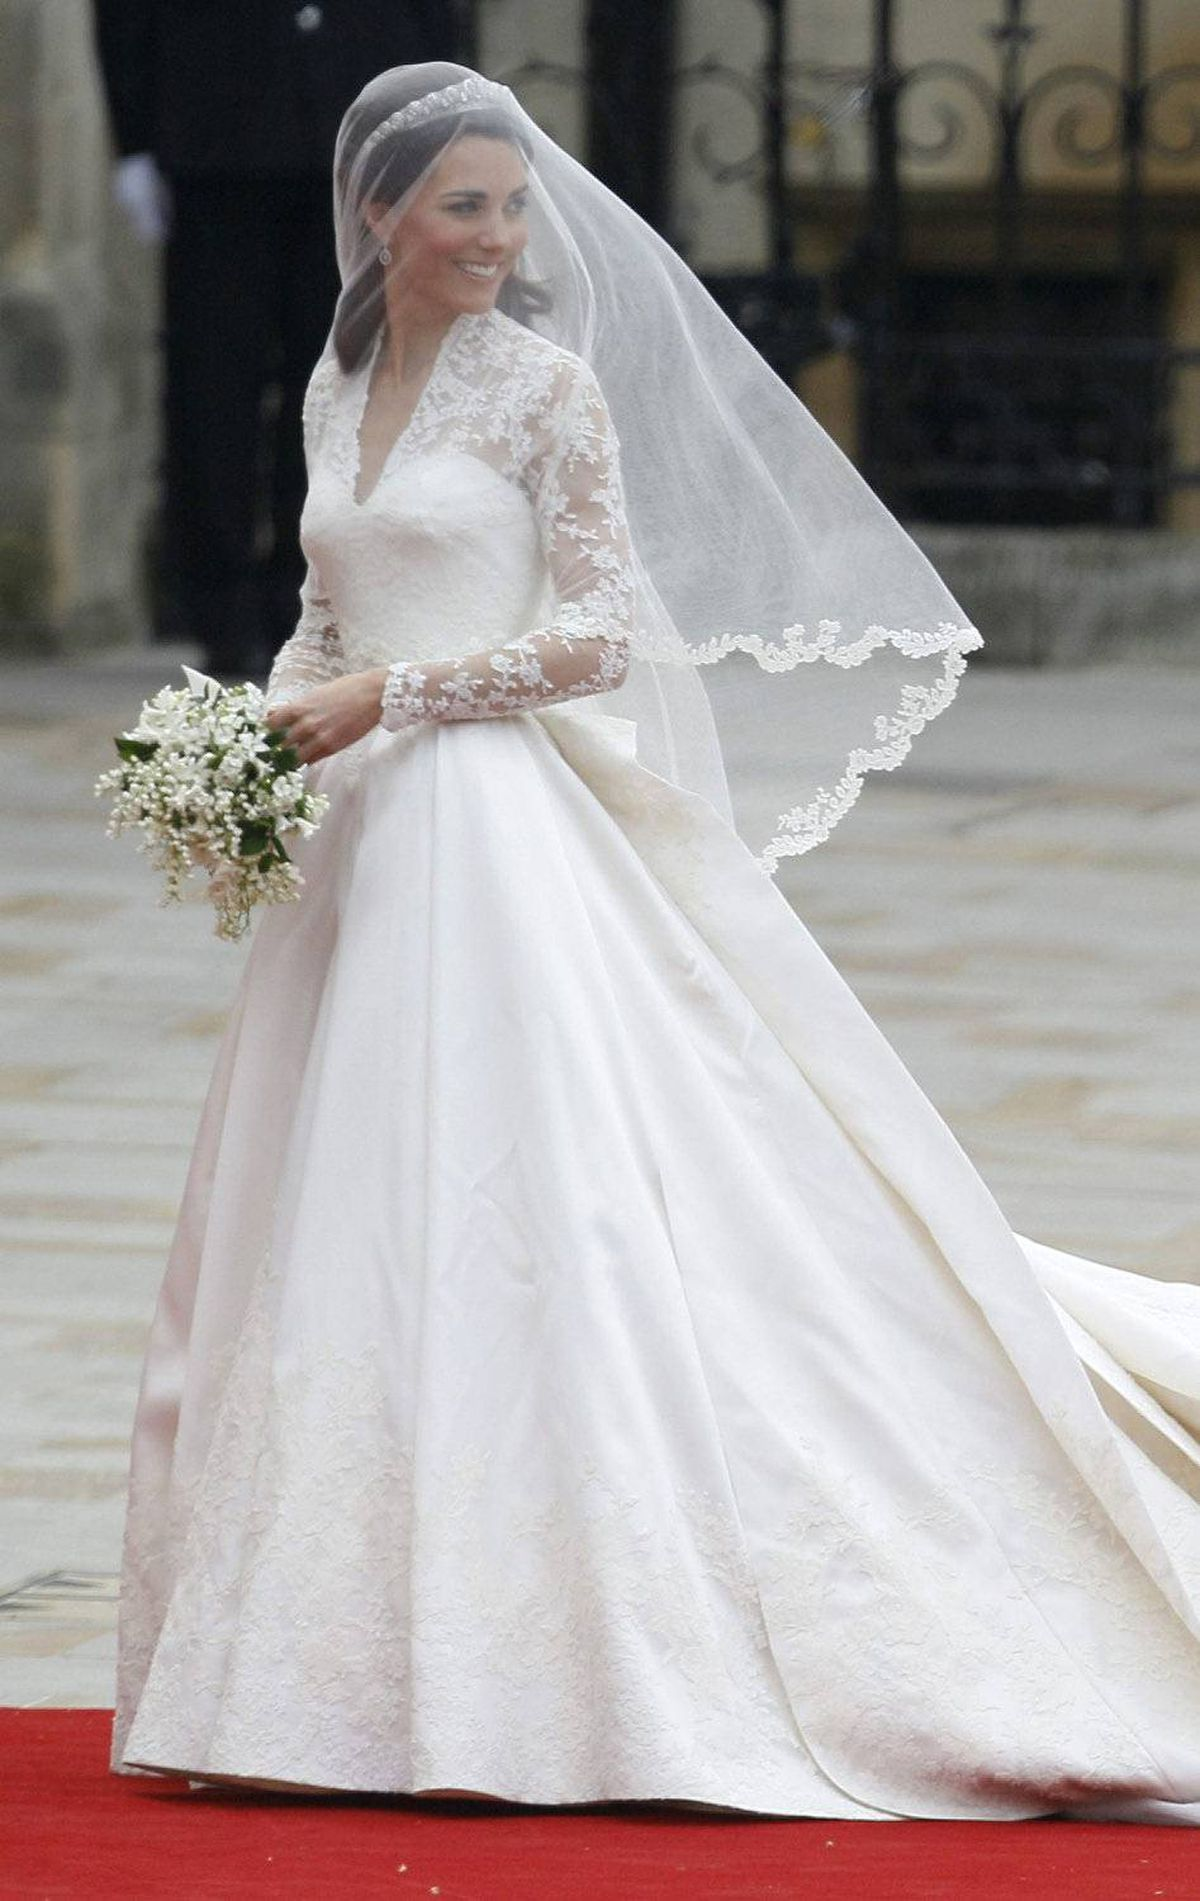 The dress that starts it all: Kate Middleton arrives for her April 29 wedding at Westminster Abbey in a gown by Sarah Burton for Alexander McQueen.